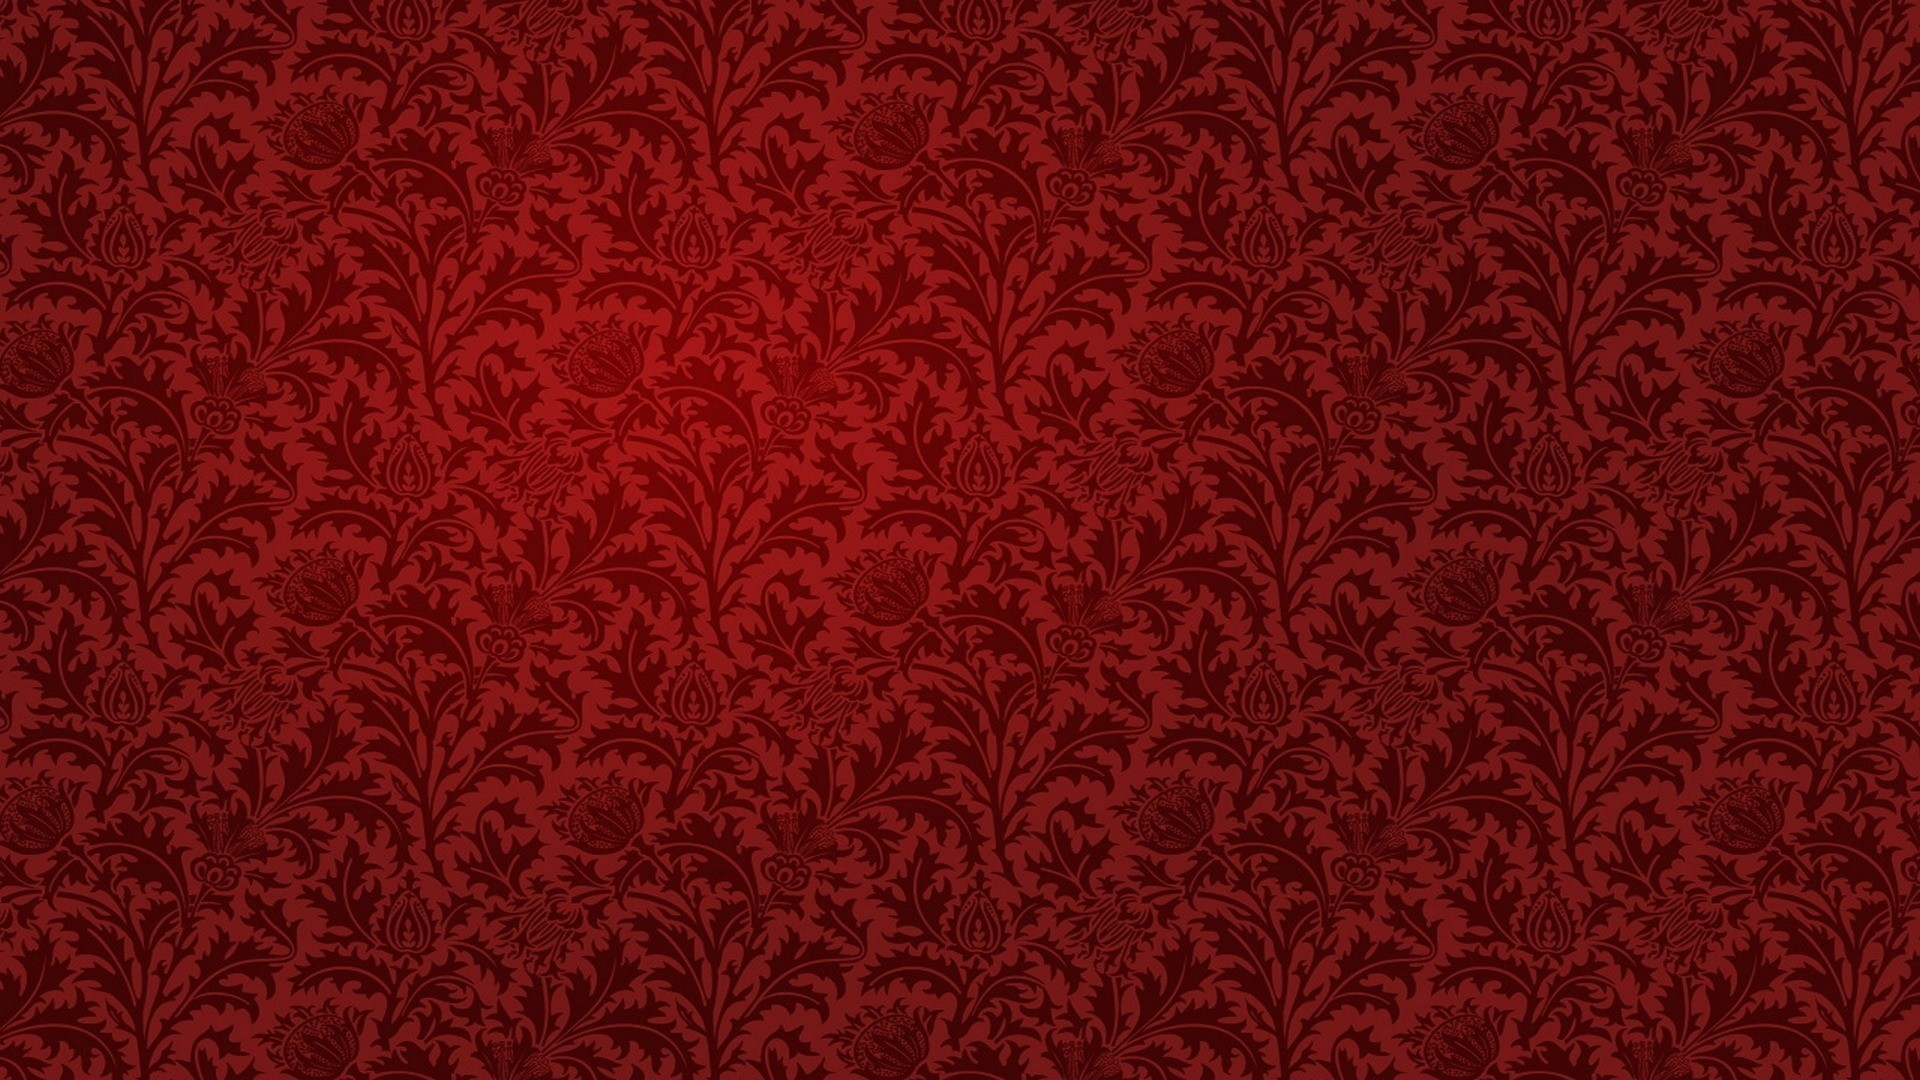 simple retro wallpaper 1920x1080 - photo #41